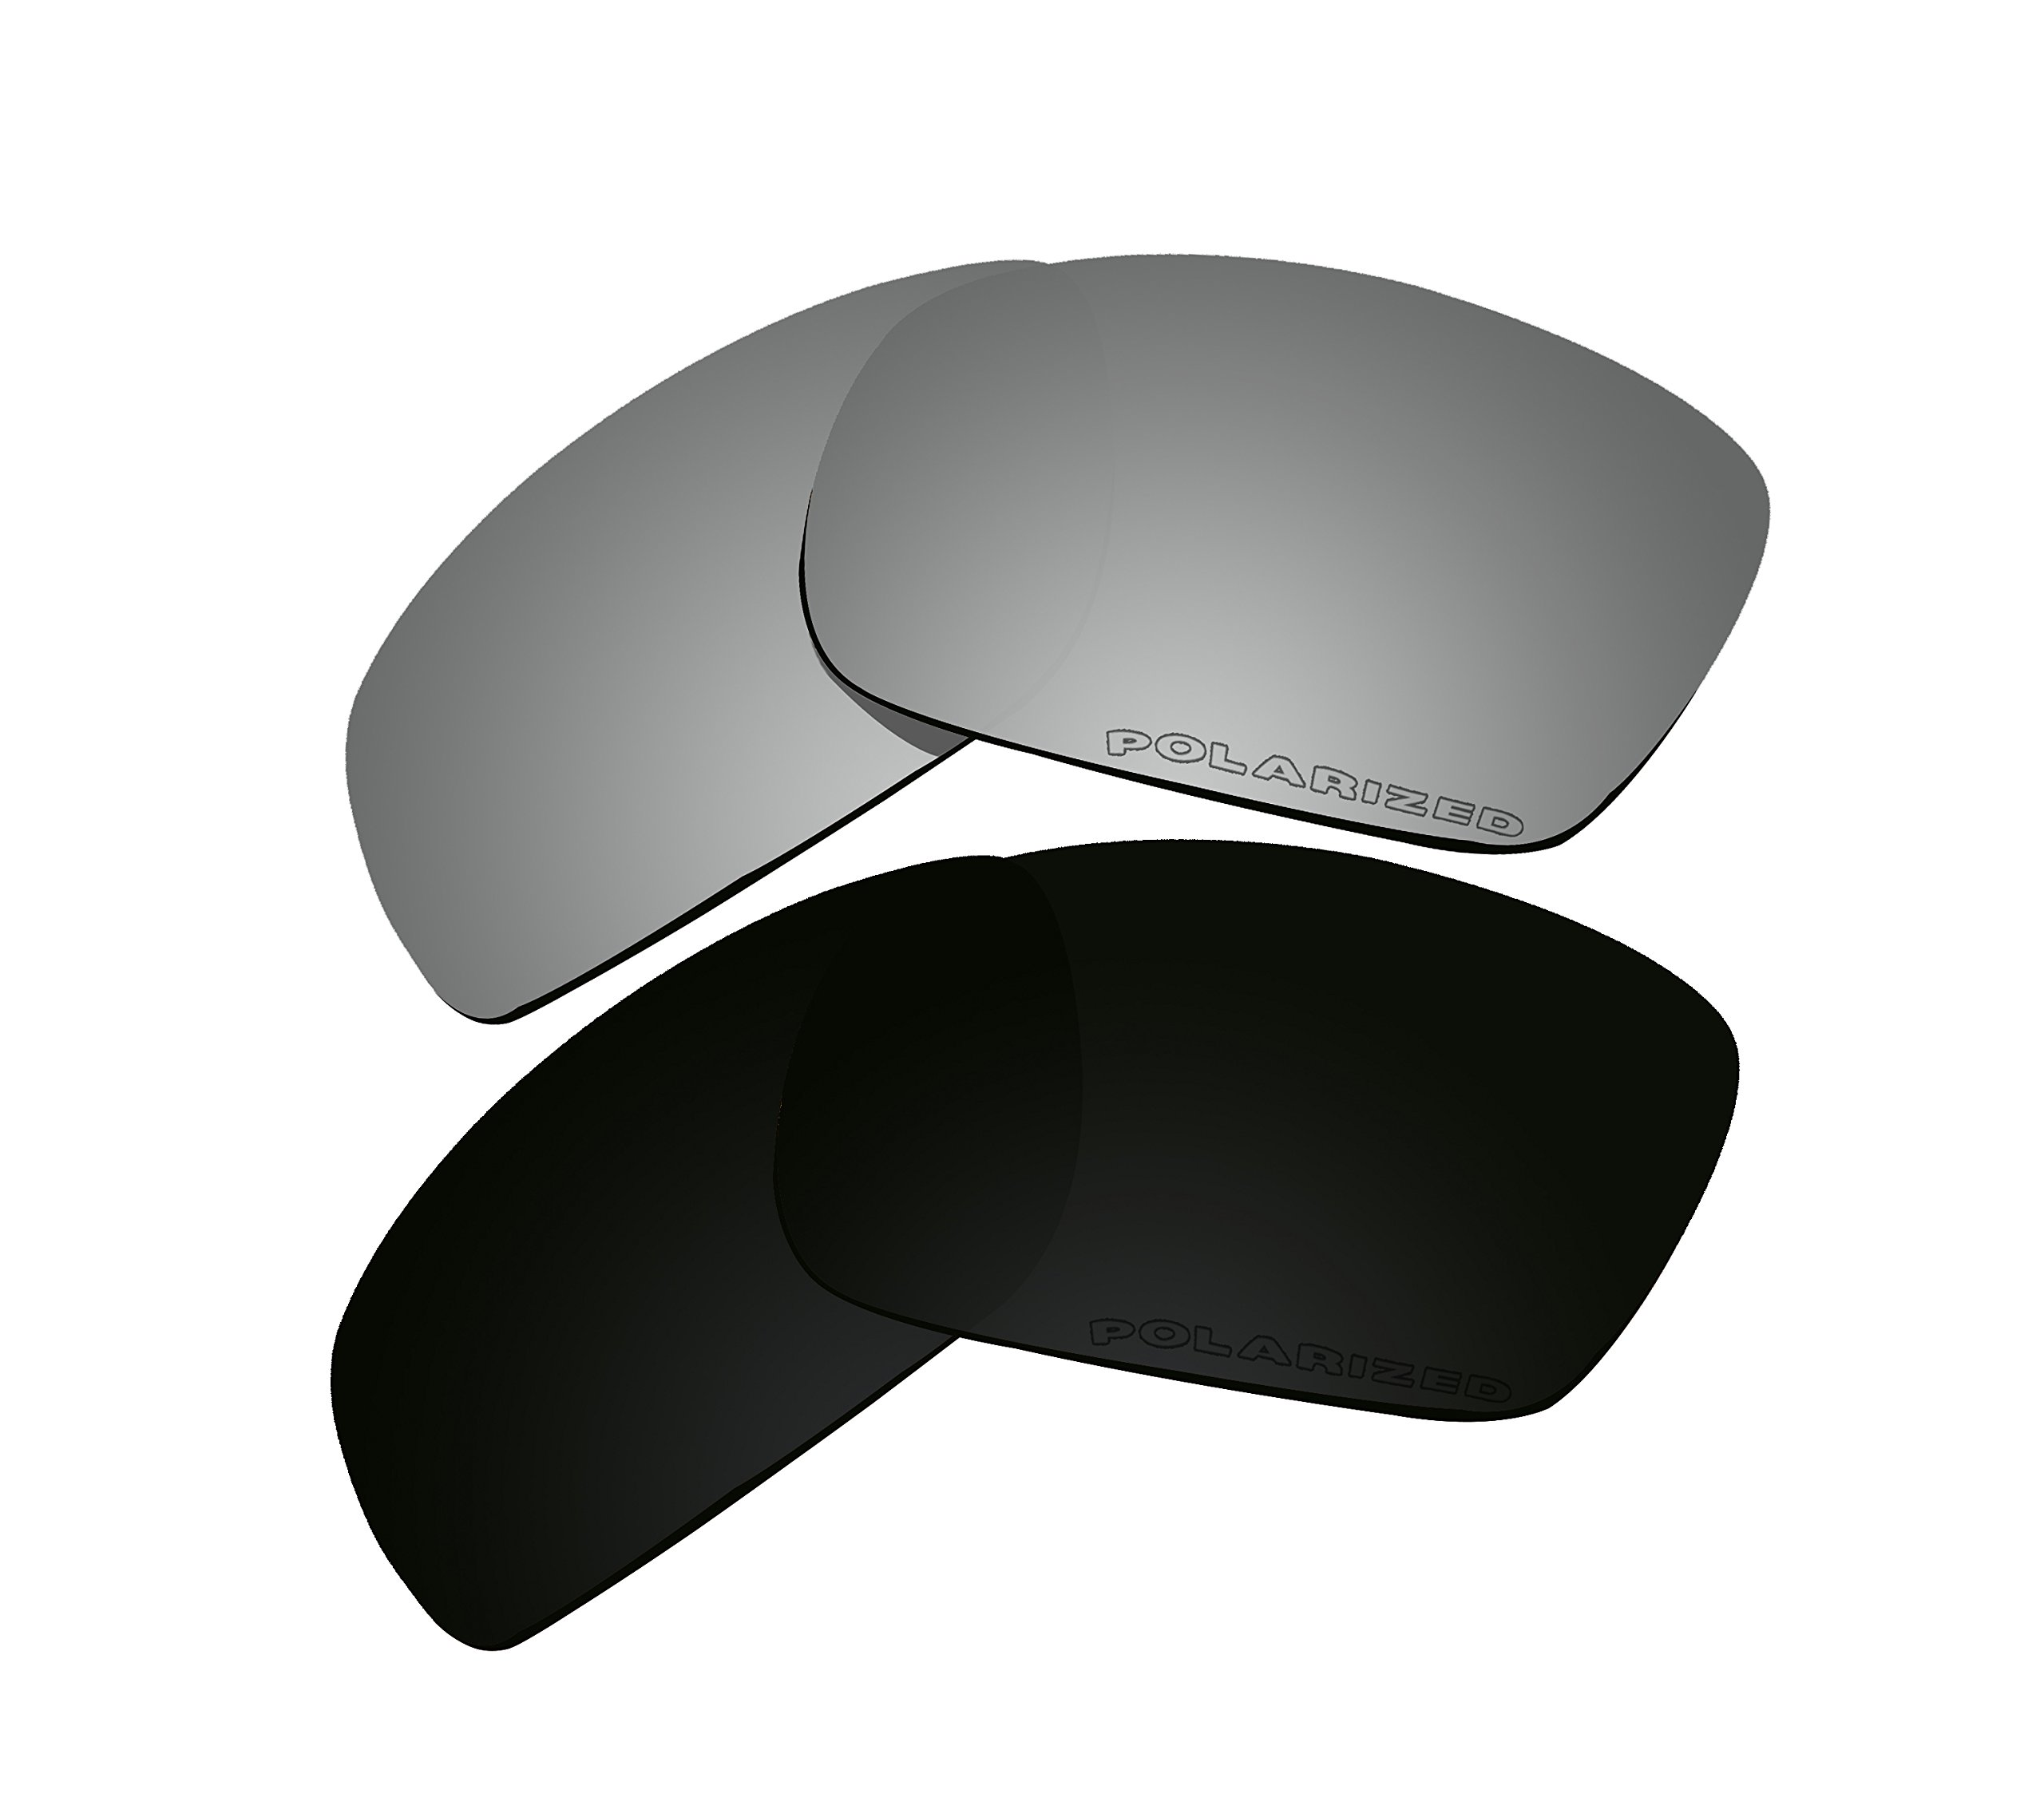 2 Pairs Polarized Lenses Replacement Black & Black Iridium for Oakley Fives Squared New (2013) OO9238 Sunglasses by BVANQ